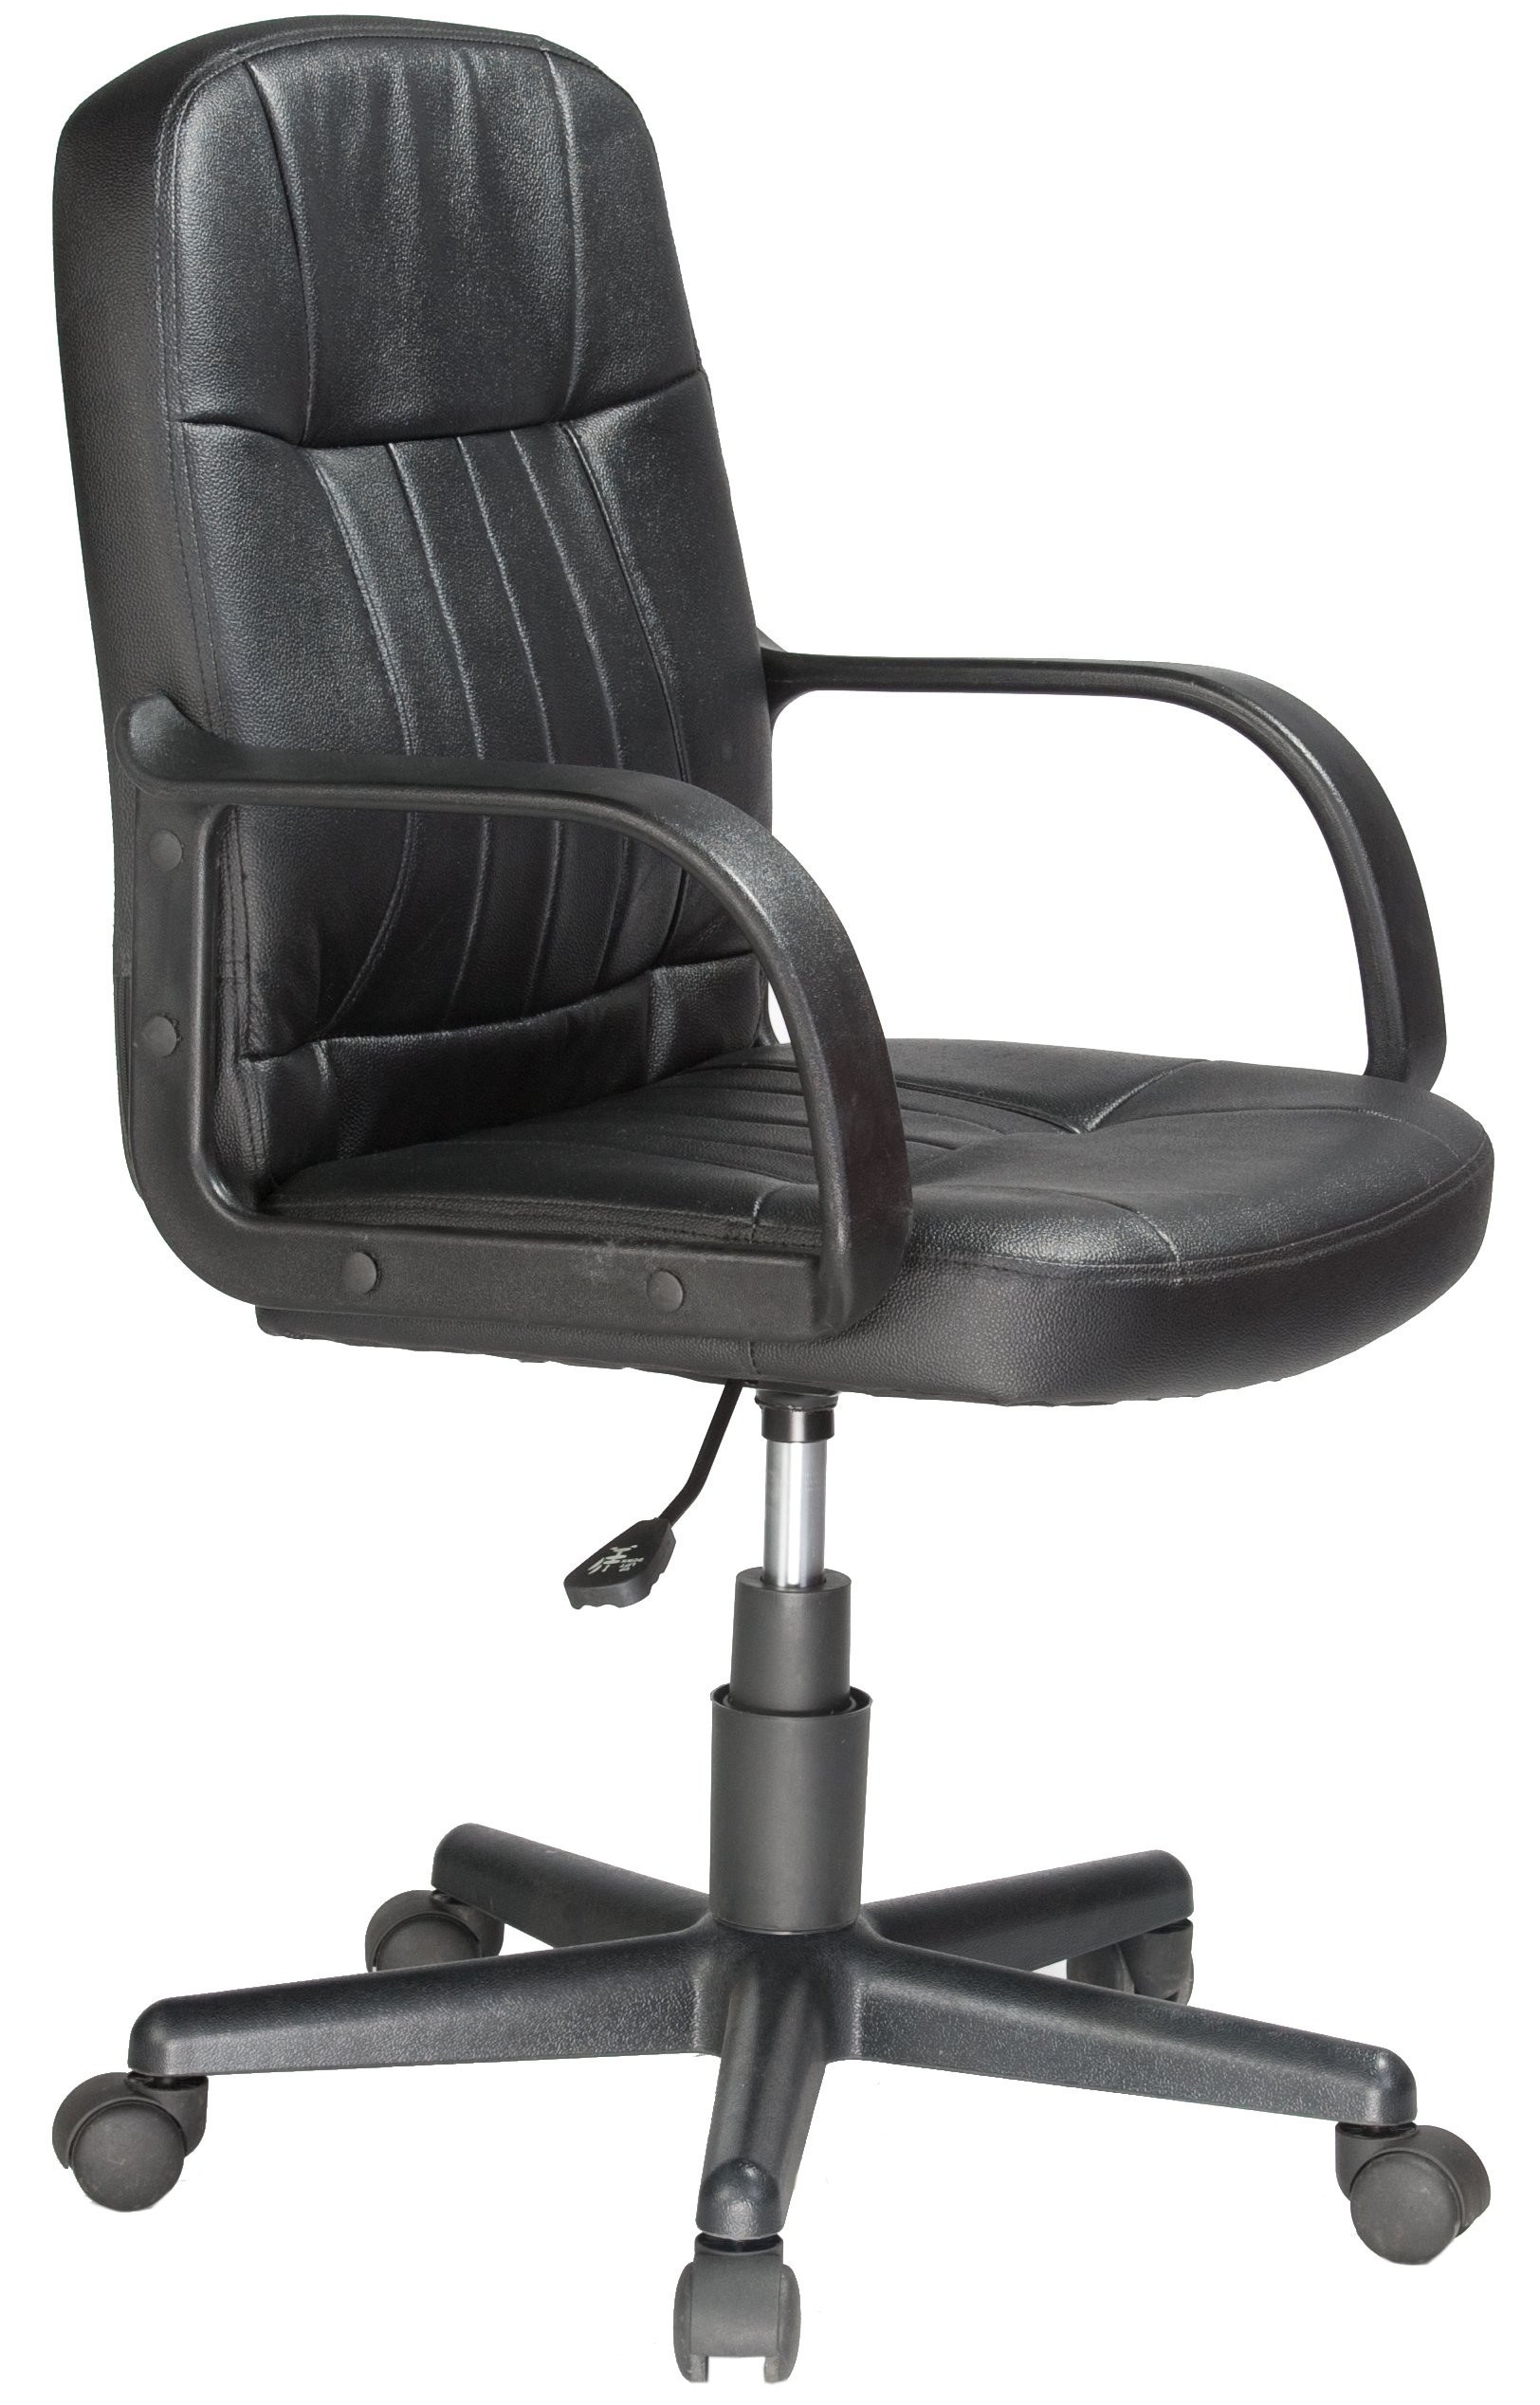 Comfort Products Mid-Back Leather Office Chair, Black by Comfort Products